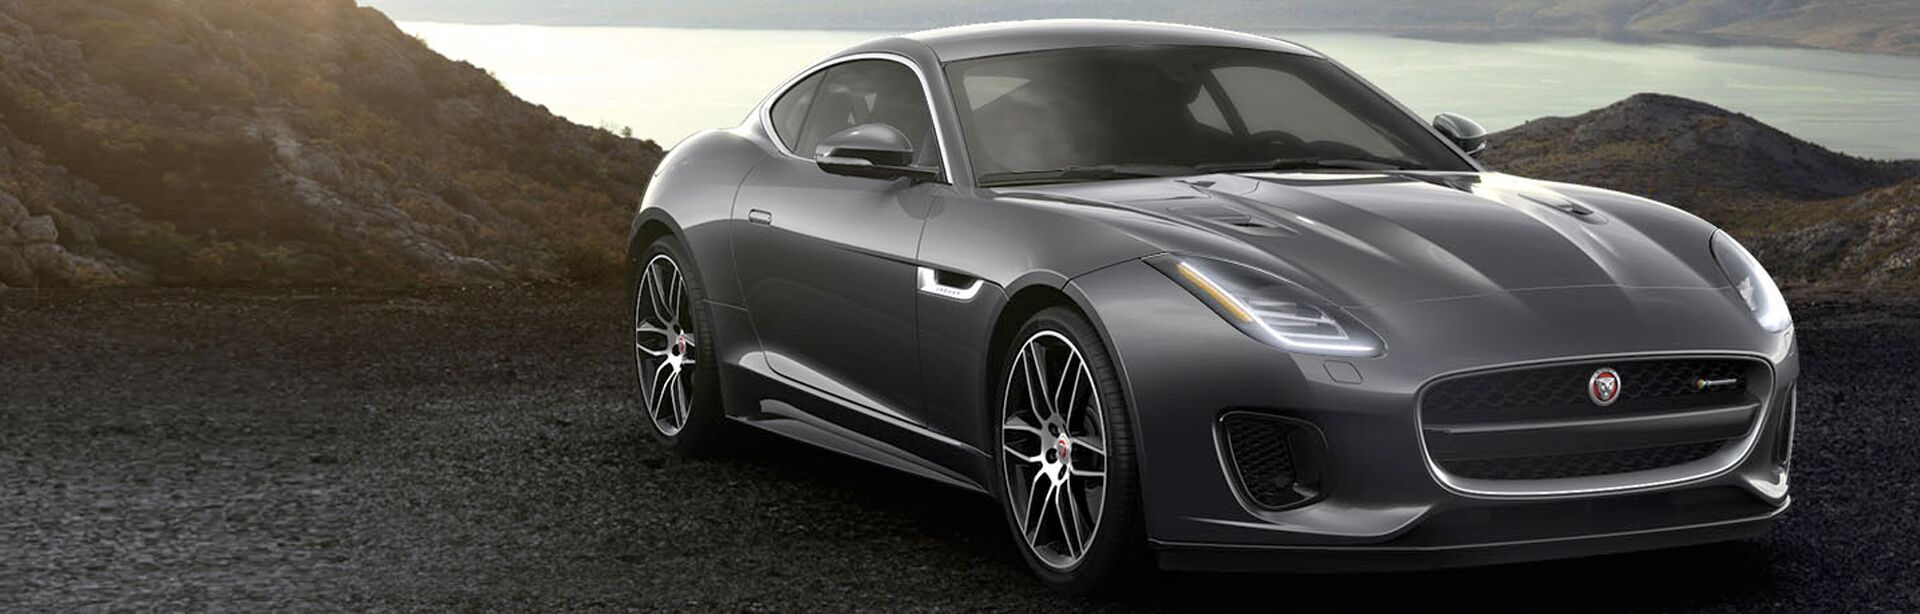 2018 Jaguar F-TYPE Coupe Auto R-Dynamic